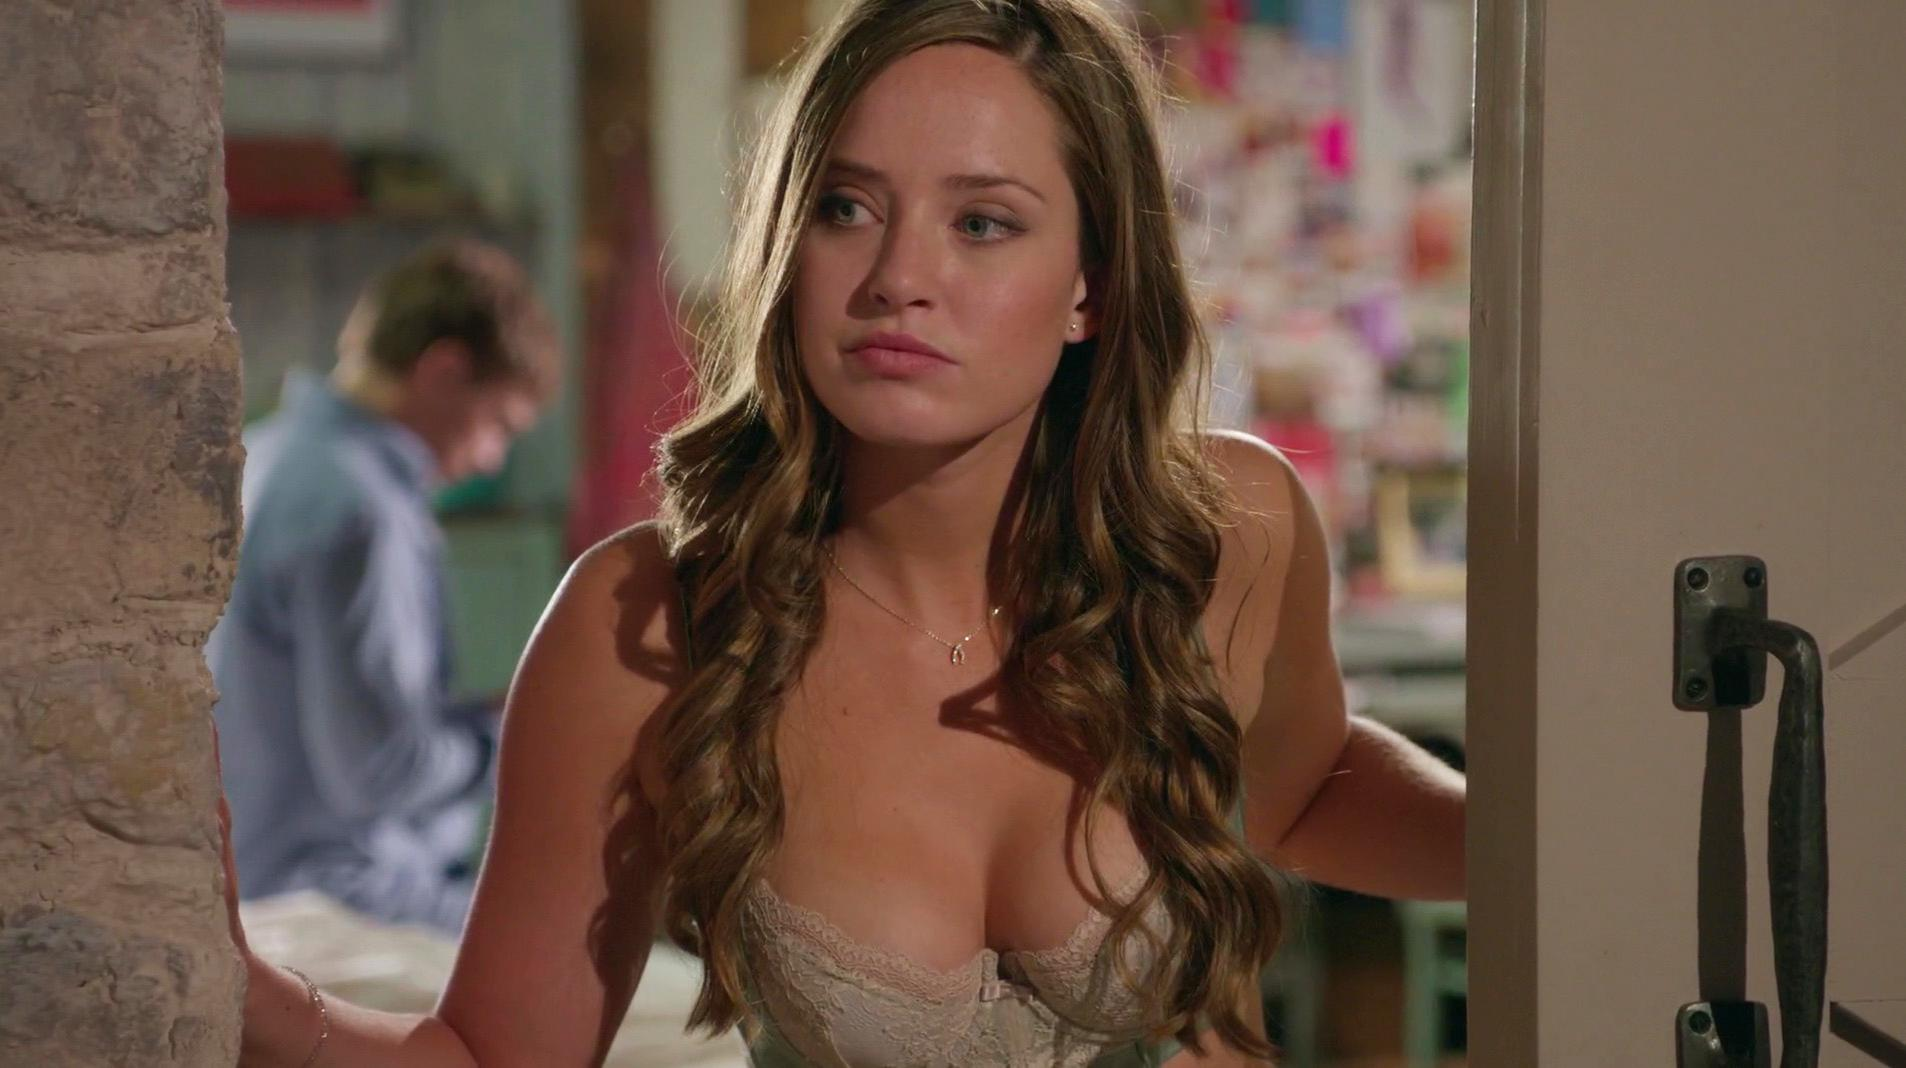 Merritt Patterson sexy - The Royals s01e07 (2015)